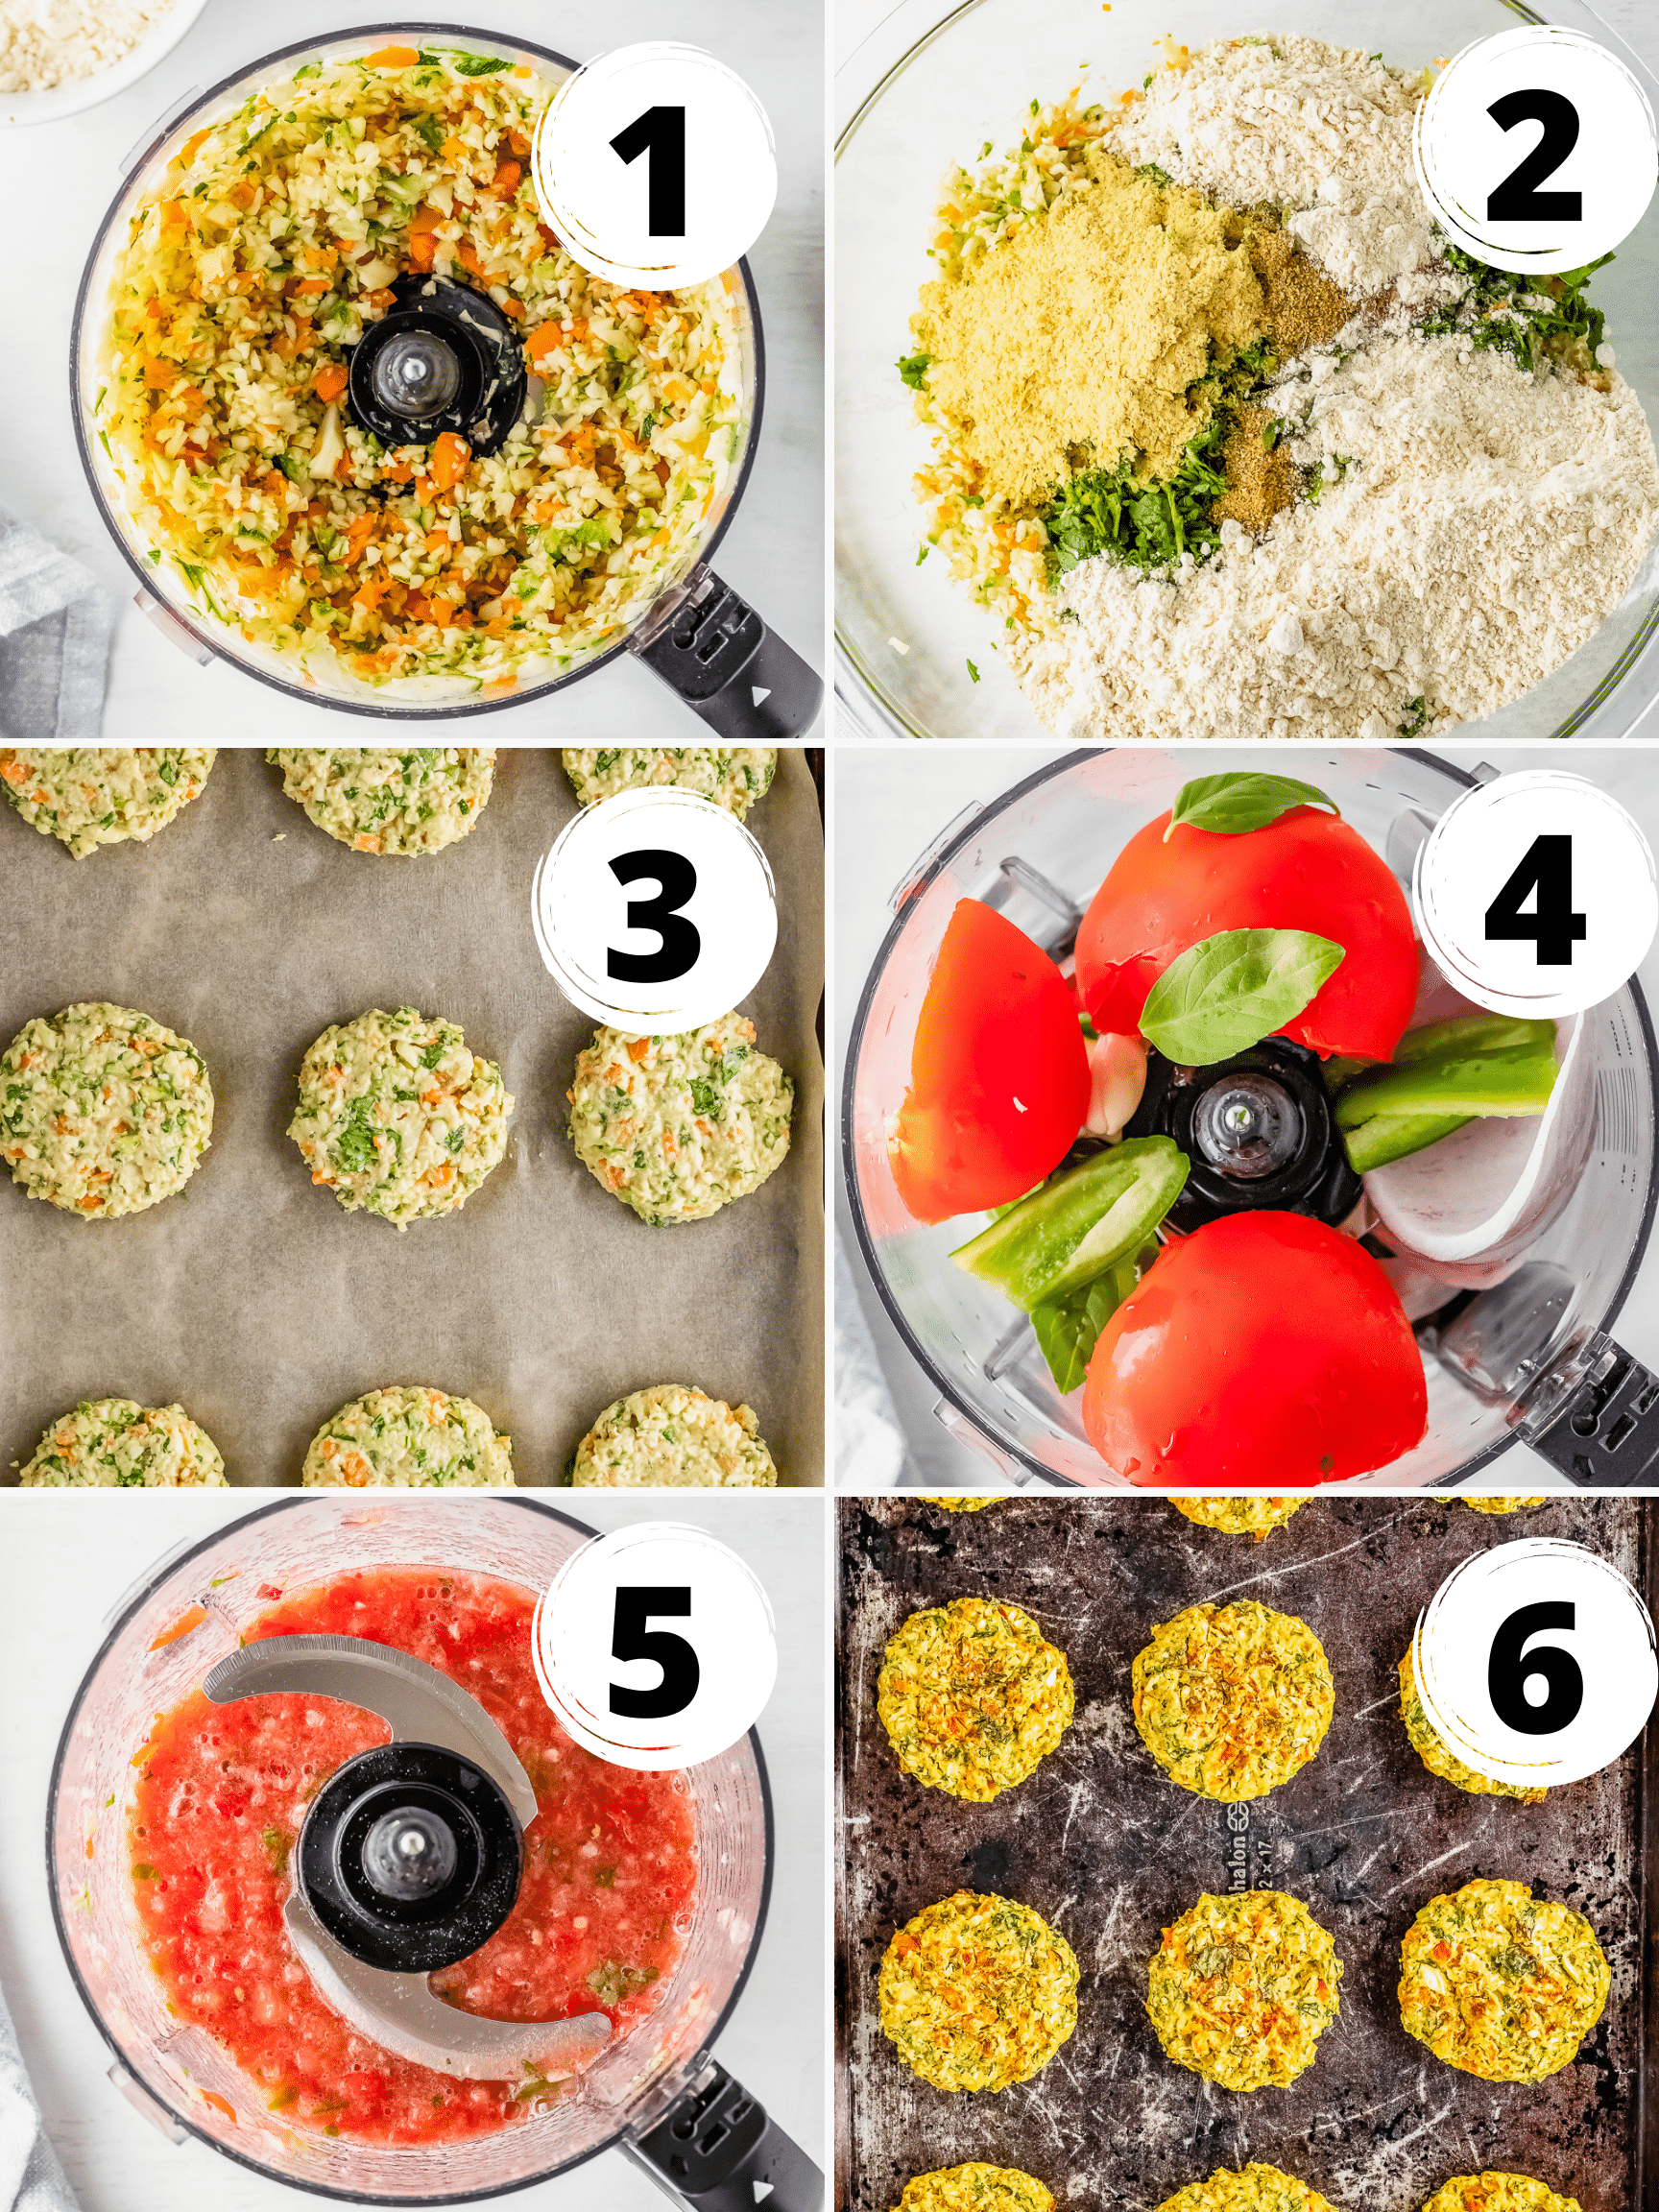 Collage of 6 steps to make vegan zucchini fritters and tomato salsa